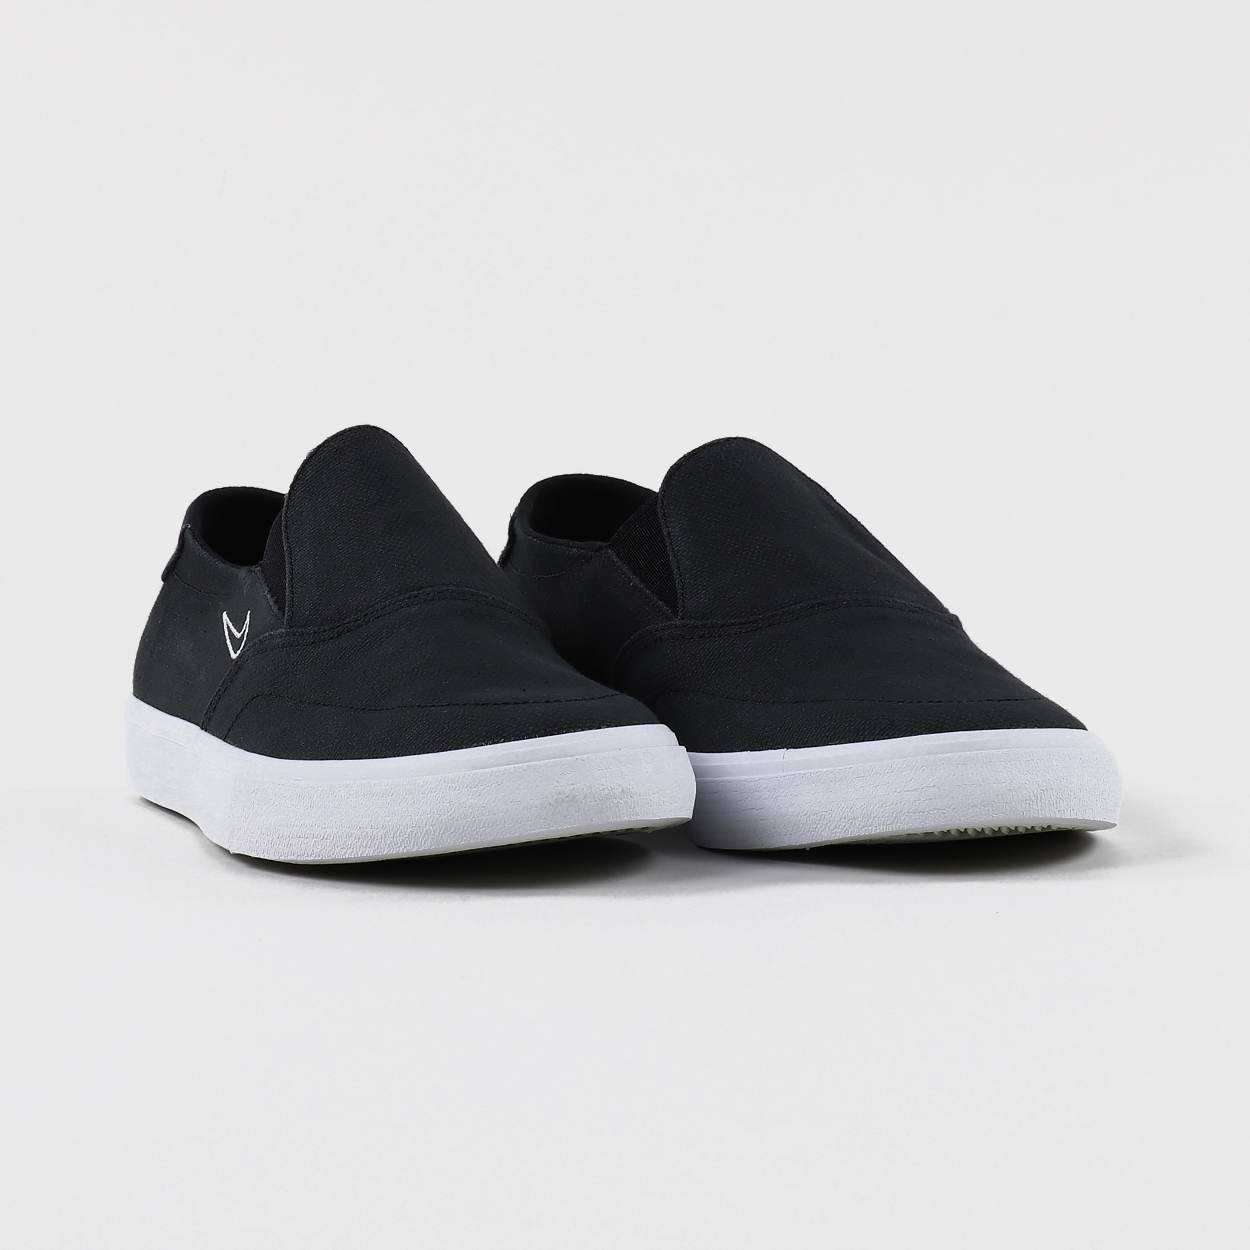 9b6cb315ed5d8 The slip-on equivalent of the Portmore II is lightweight, flexible,  comfortable, and the upper made solely from canvas is incredibly durable,  ...